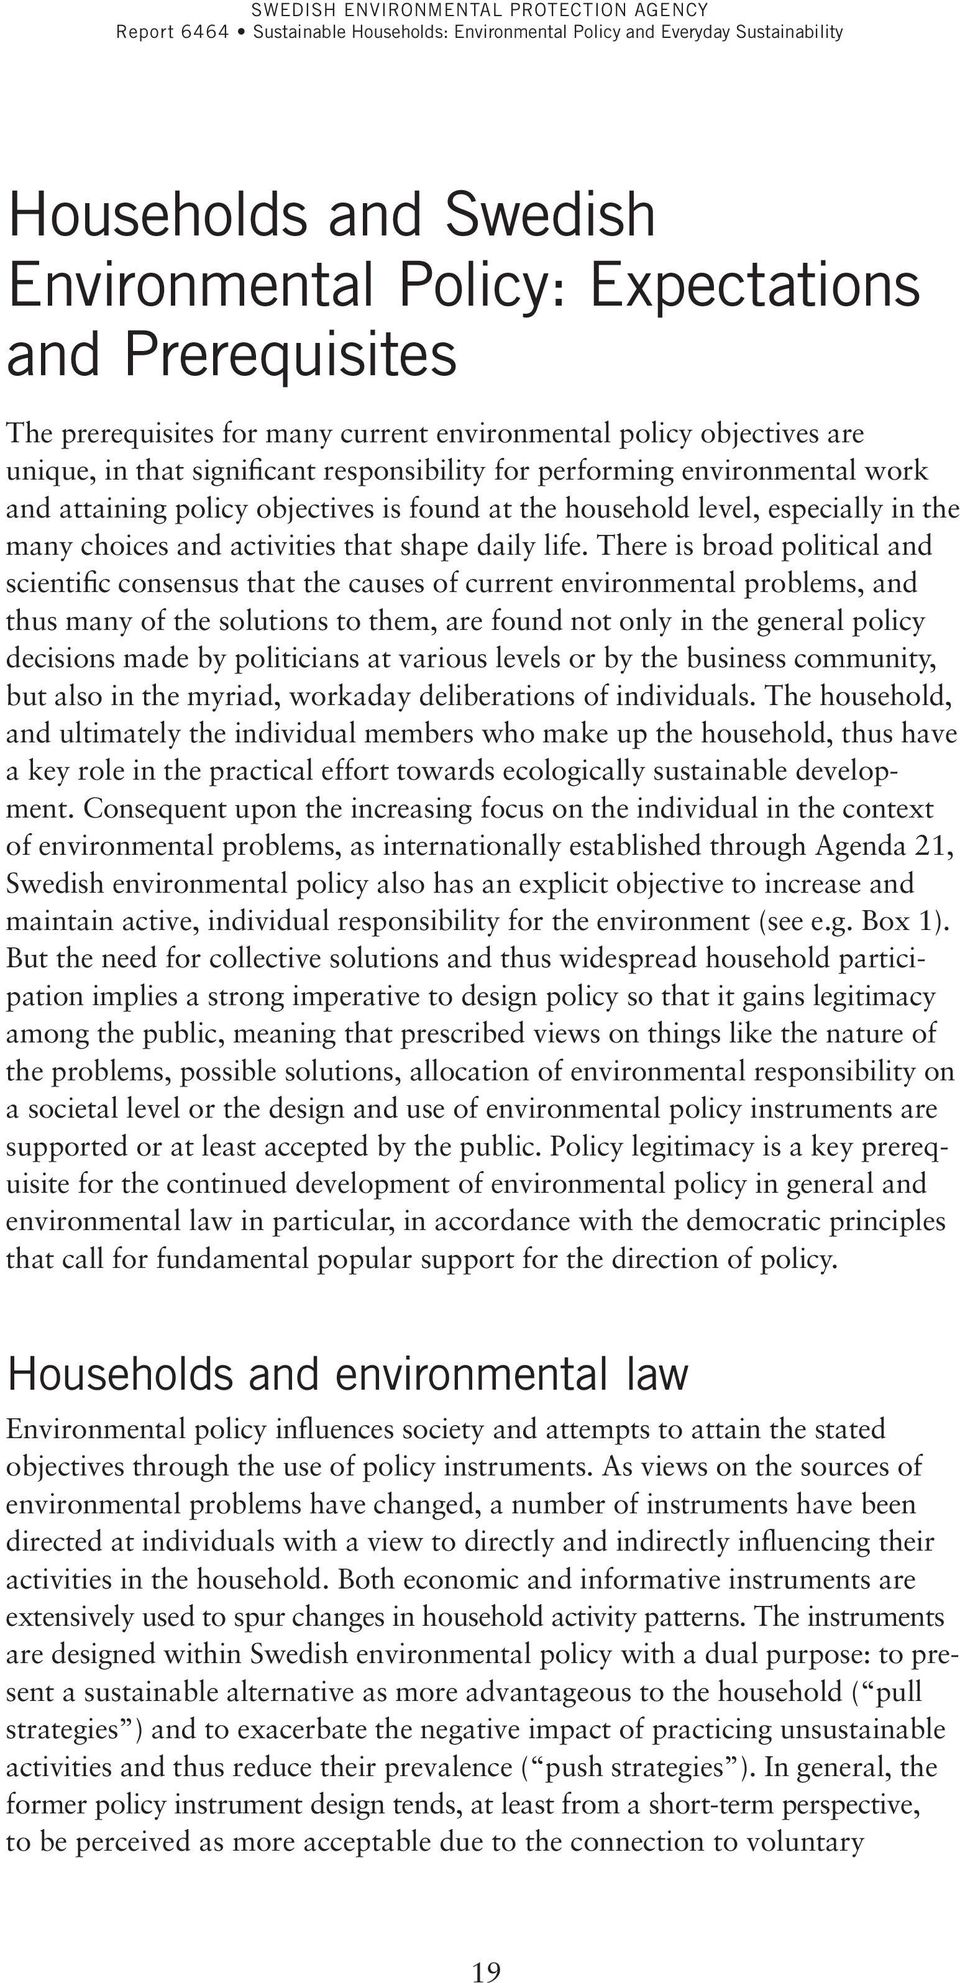 There is broad political and scientific consensus that the causes of current environmental problems, and thus many of the solutions to them, are found not only in the general policy decisions made by